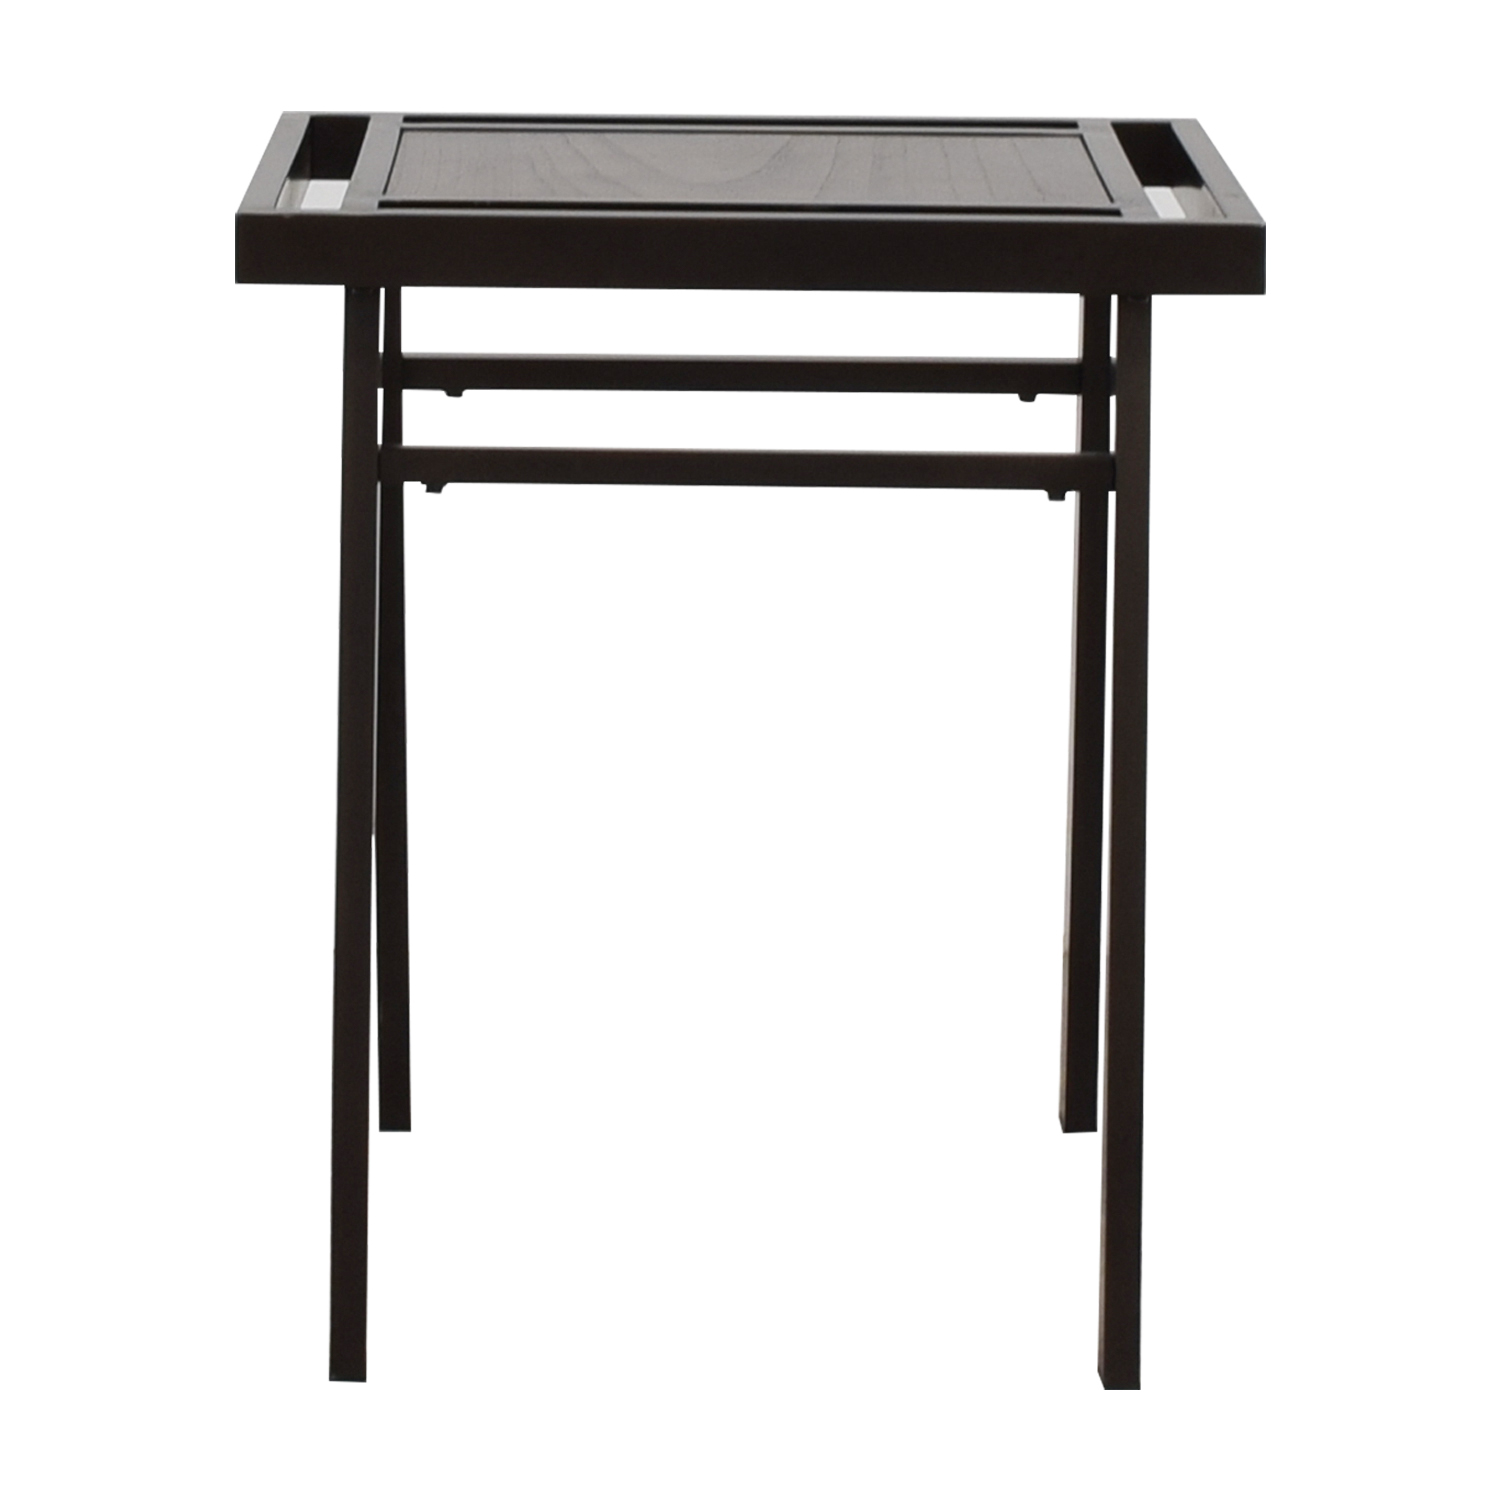 Ashley Furniture Ashley Furniture Side Table price